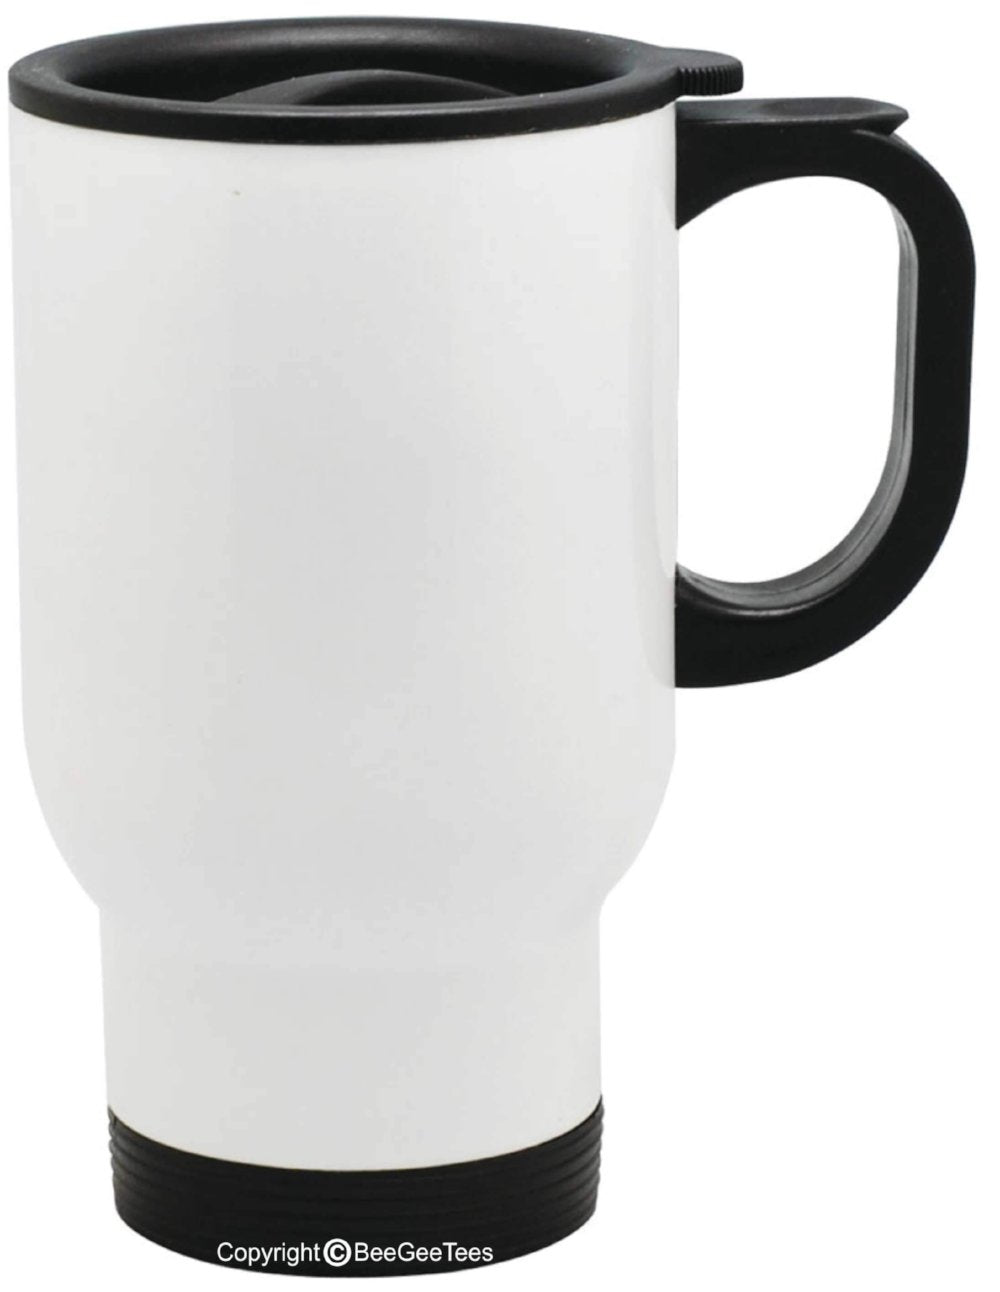 Customizable Travel Mug 14 Oz Stainless Steel White Beegeetees